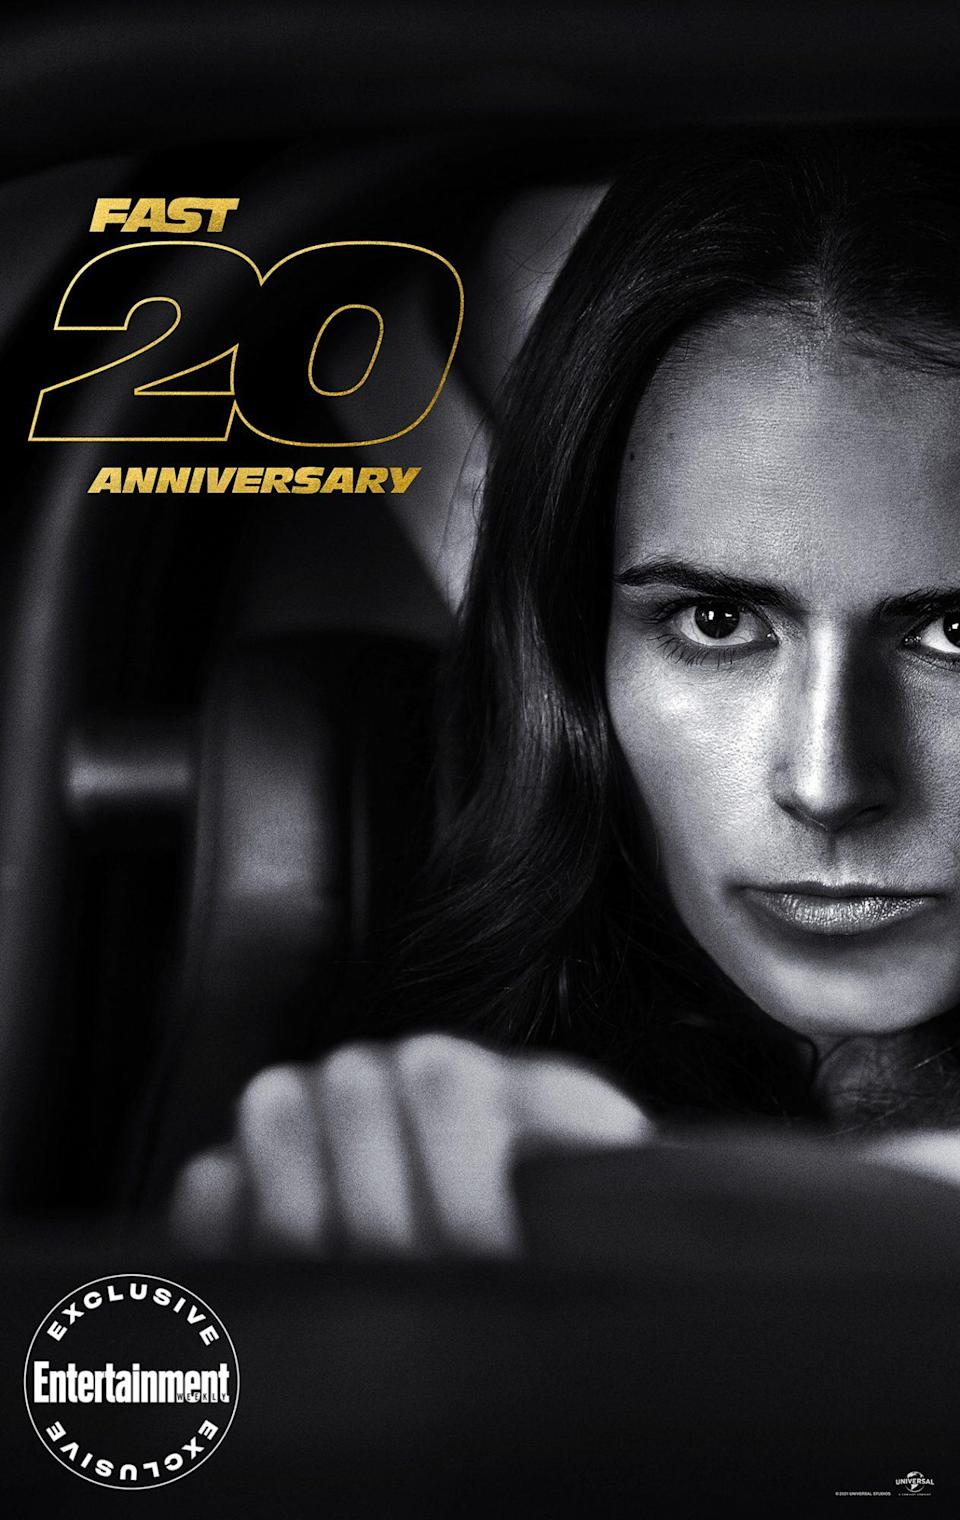 """<p>Twenty years in, original star <a href=""""https://ew.com/tag/jordana-brewster/"""" rel=""""nofollow noopener"""" target=""""_blank"""" data-ylk=""""slk:Jordana Brewster"""" class=""""link rapid-noclick-resp"""">Jordana Brewster</a> is still learning from Mia. """"I think in real life I'm sometimes so shy or a little bit soft-spoken, and when I watch I'm like, 'Mia is such a badass,'"""" <a href=""""https://ew.com/ew-binge-podcast/fast-saga-jordana-brewster-fast-five/"""" rel=""""nofollow noopener"""" target=""""_blank"""" data-ylk=""""slk:she recently said on EW's BINGE: The Fast Saga"""" class=""""link rapid-noclick-resp"""">she recently said on <em>EW's BINGE: The Fast Saga</em></a>. """"To see Mia and be like, 'Oh, she's such a good example for women out there,' and she's even a good example for me to just own it. I love that about her.""""</p>"""